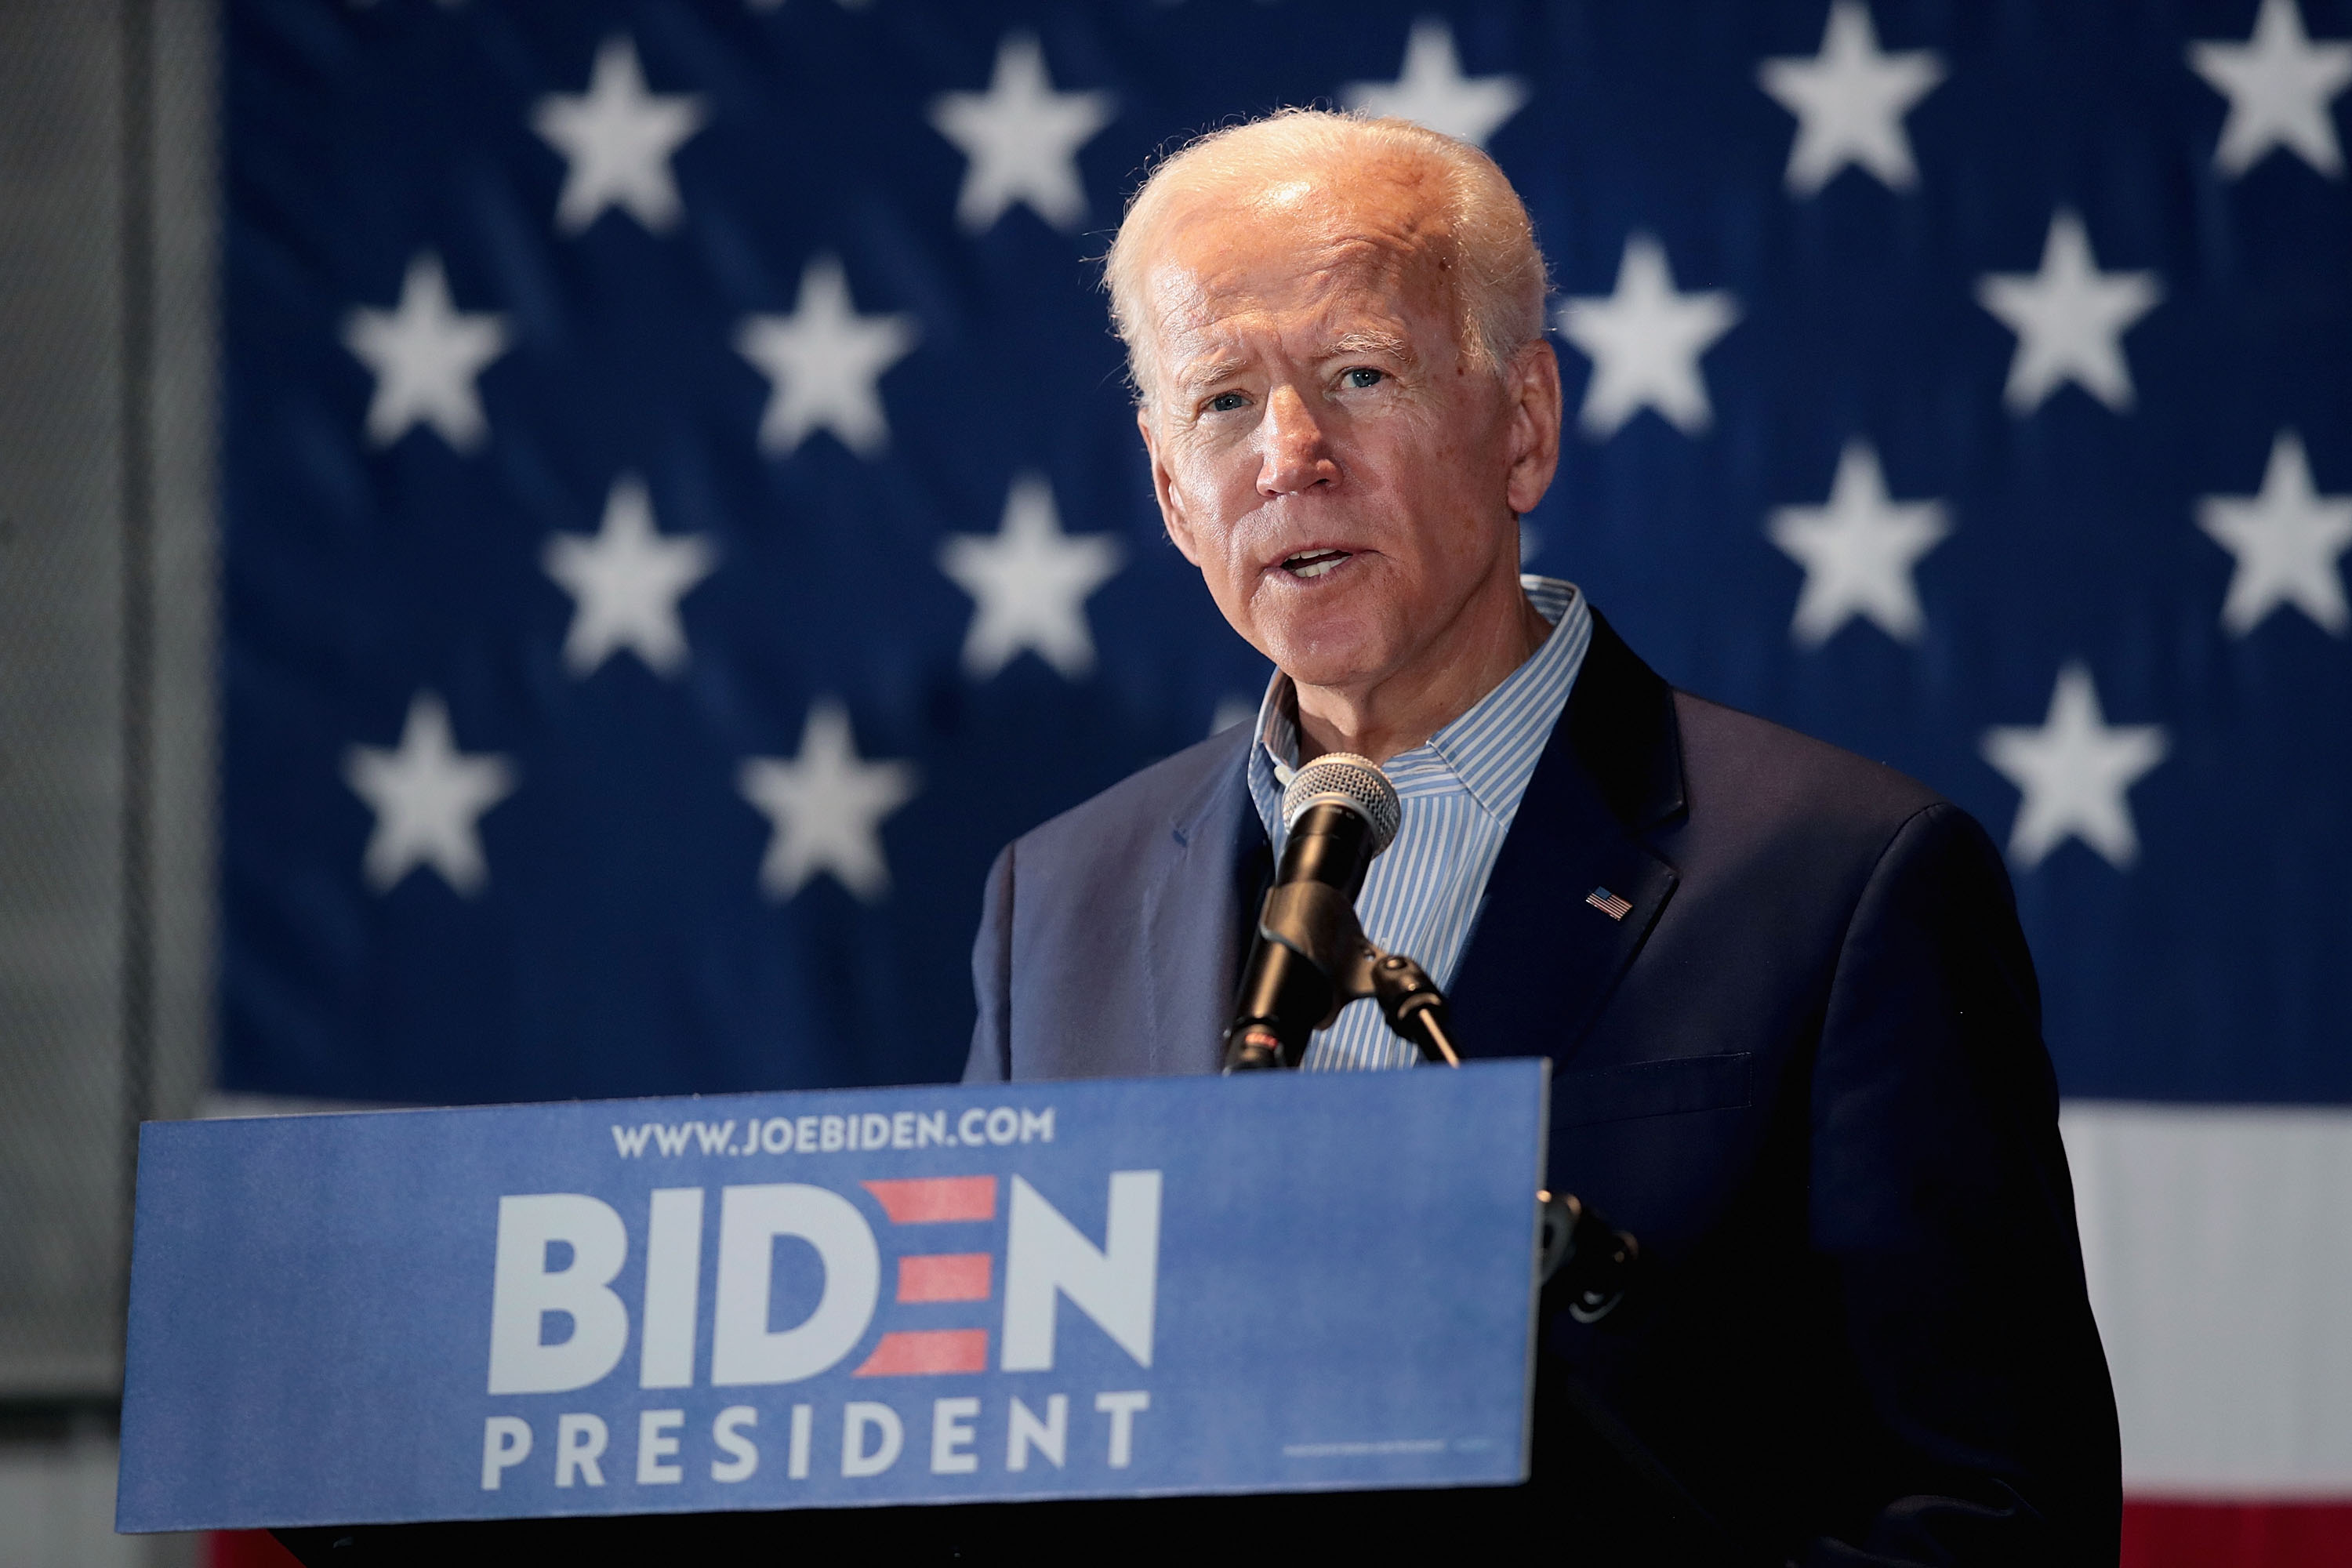 CEDAR RAPIDS, IOWA - APRIL 30: Democratic presidential candidate and former vice president Joe Biden holds a campaign event at the Veterans Memorial Building on April 30, 2019 in Cedar Rapids, Iowa. Biden is on his first visit to the state since announcing that he was officially seeking the Democratic nomination for president. (Photo by Scott Olson/Getty Images)